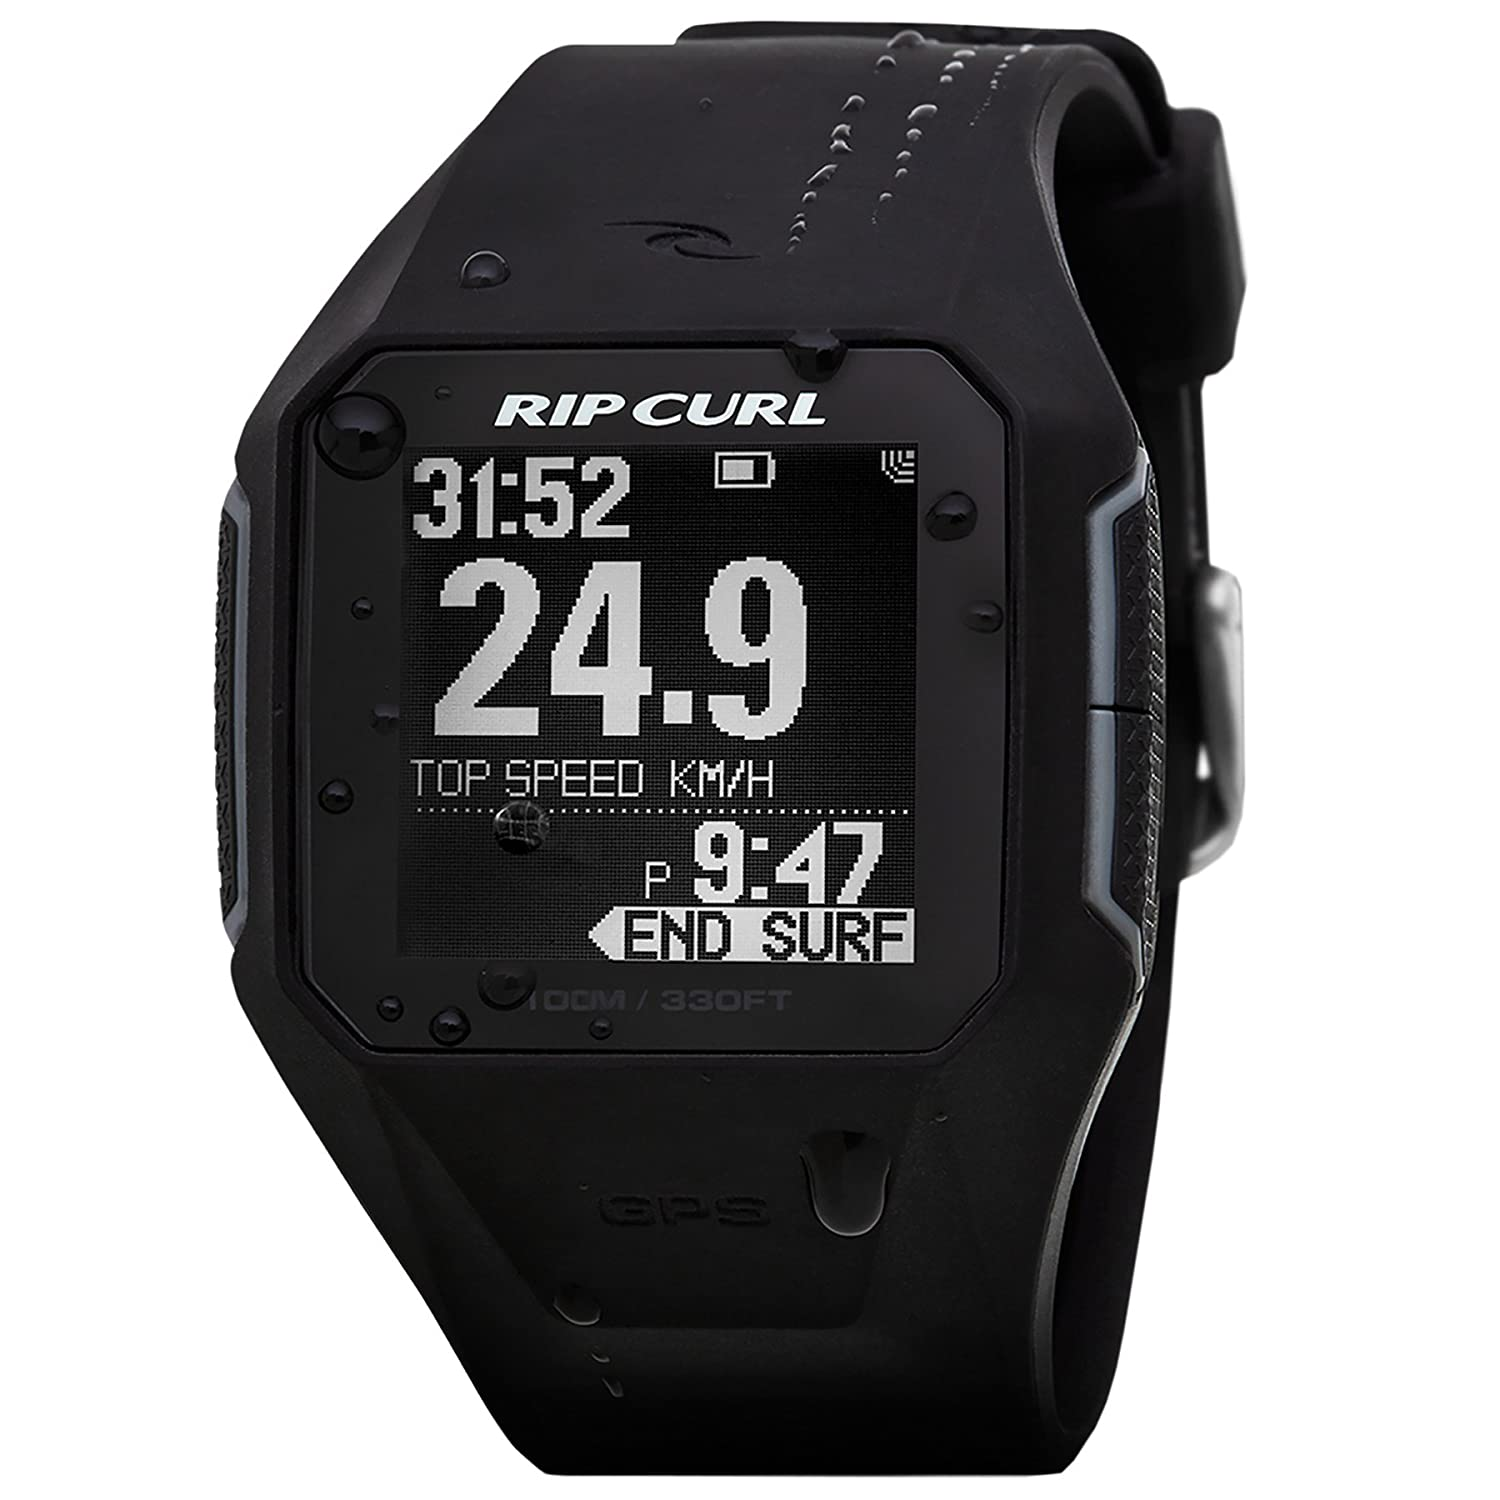 revie was review skycaddie a number during get fairly stays but glance satellite your at round gps to wrist initial linking watches requiring the watch awake rapid